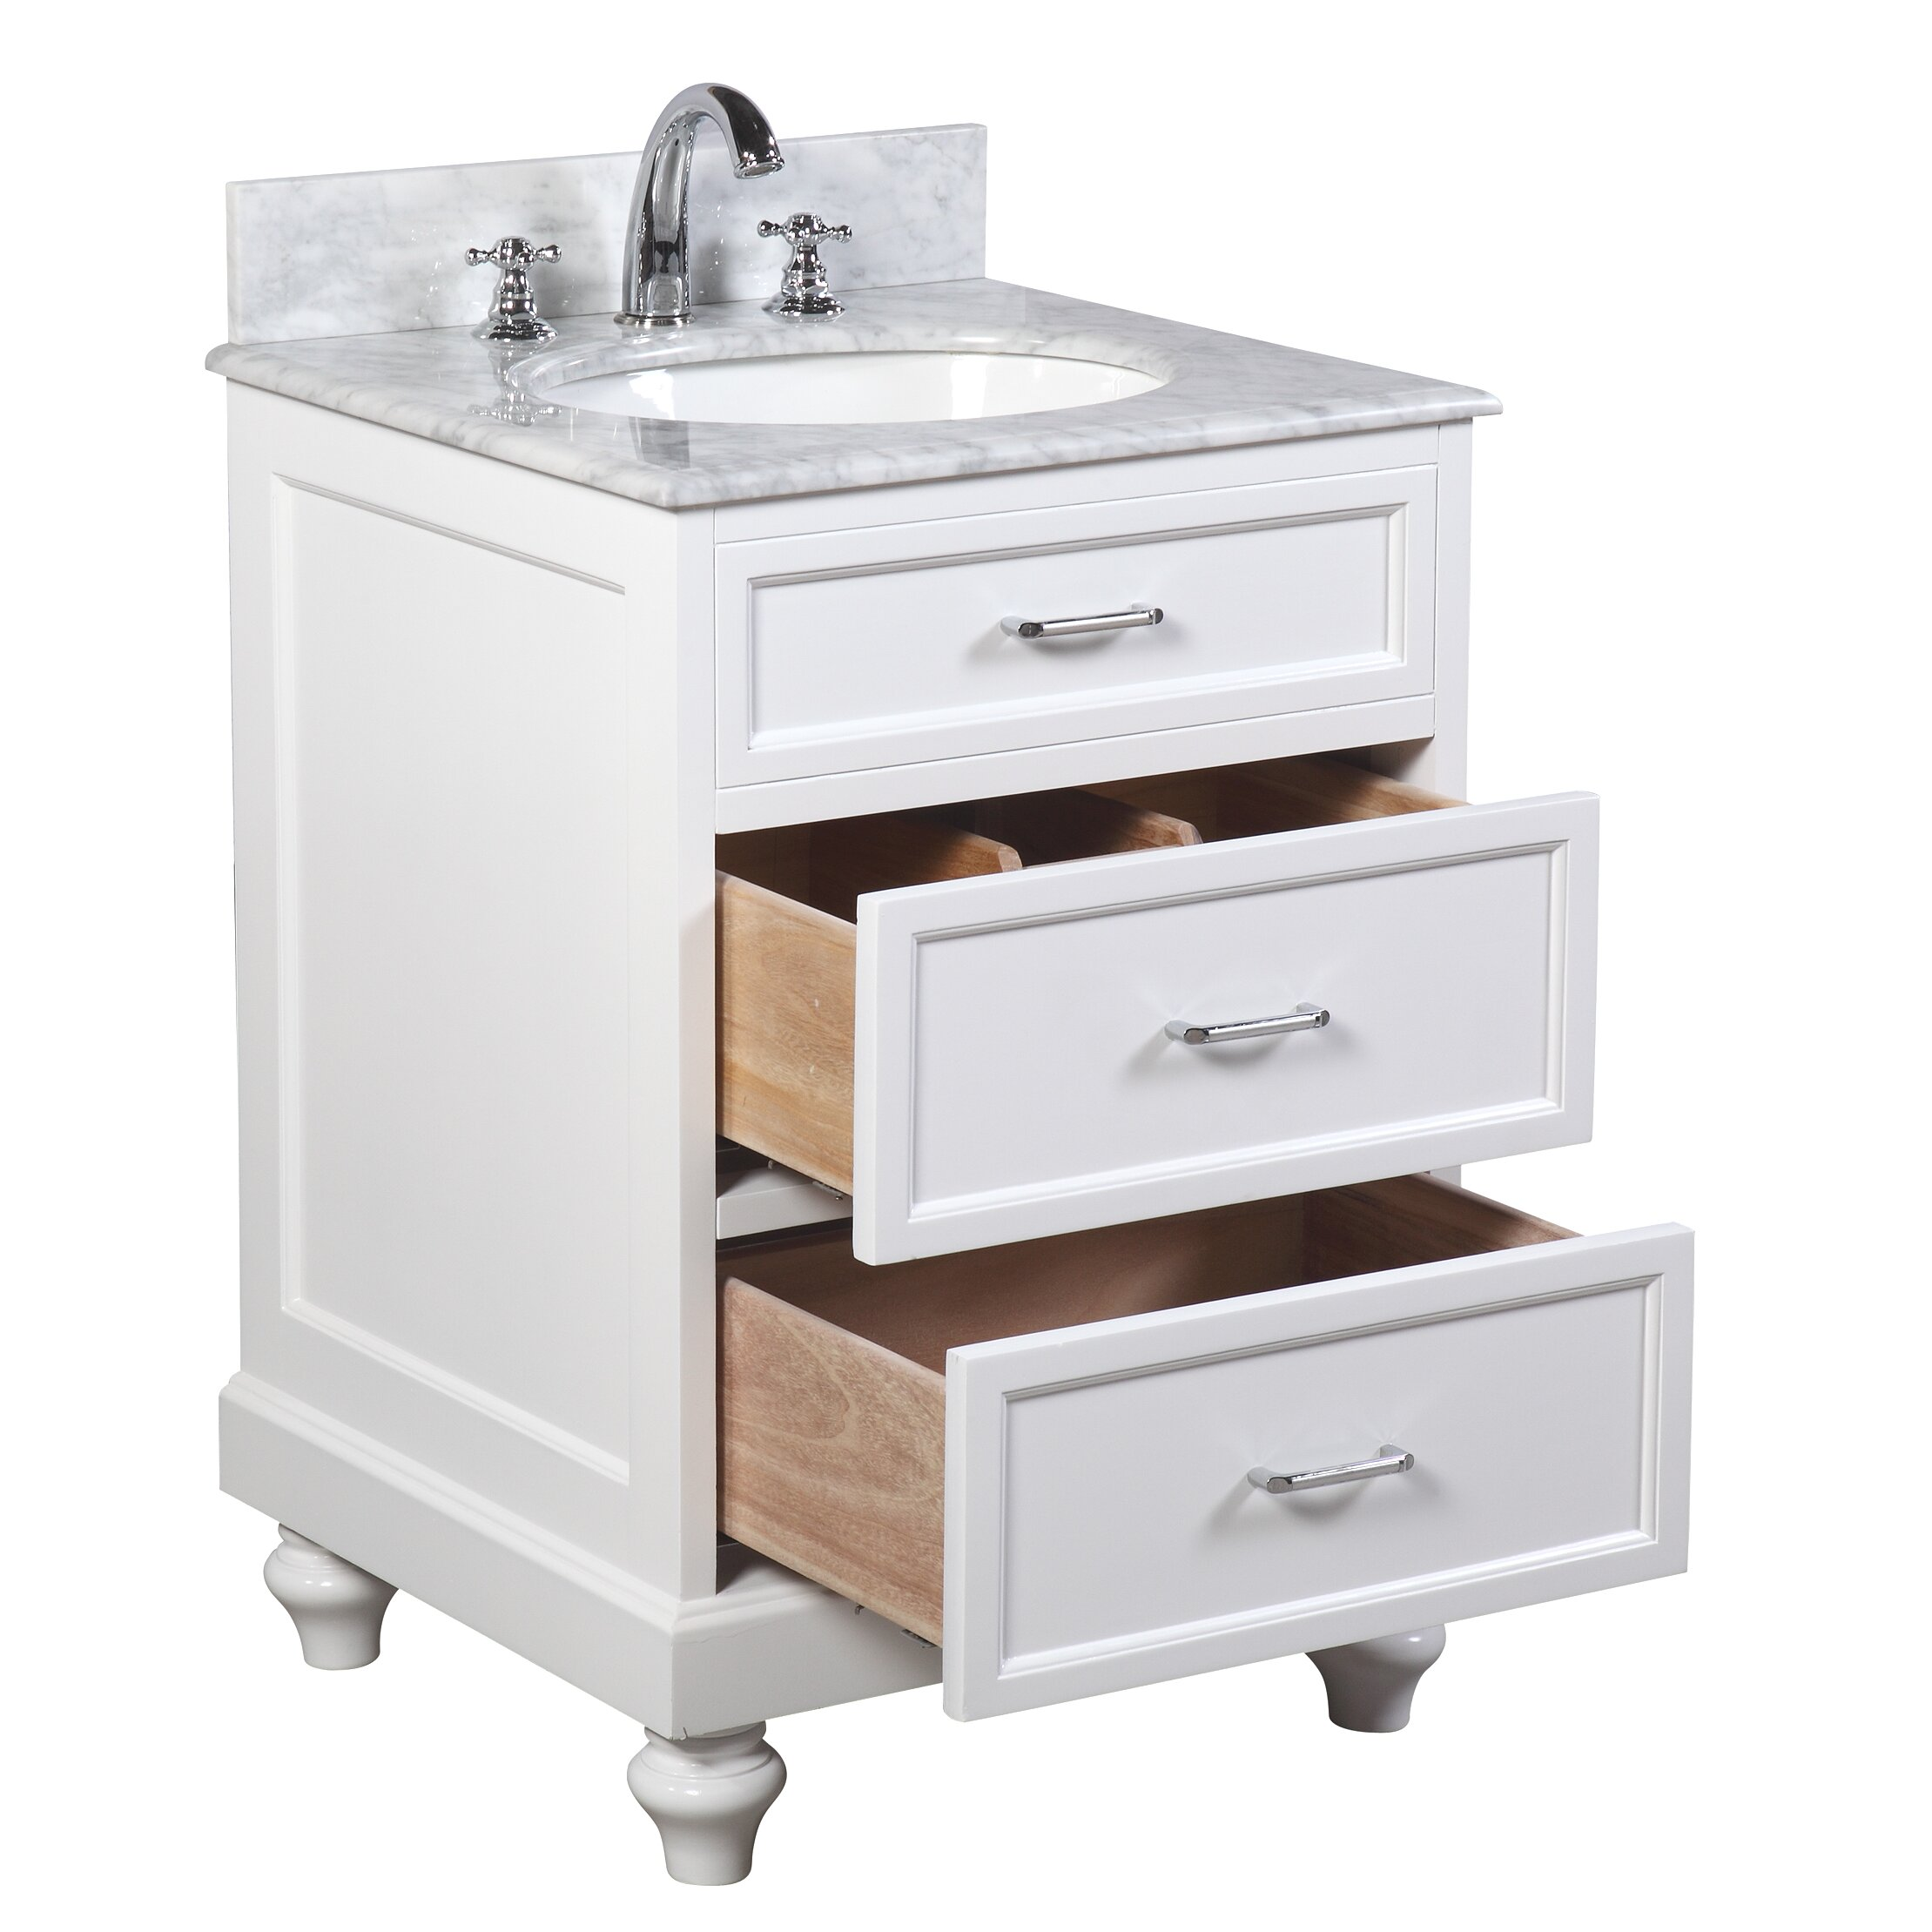 Kbc amelia 24 single bathroom vanity set reviews wayfair for Restroom vanity